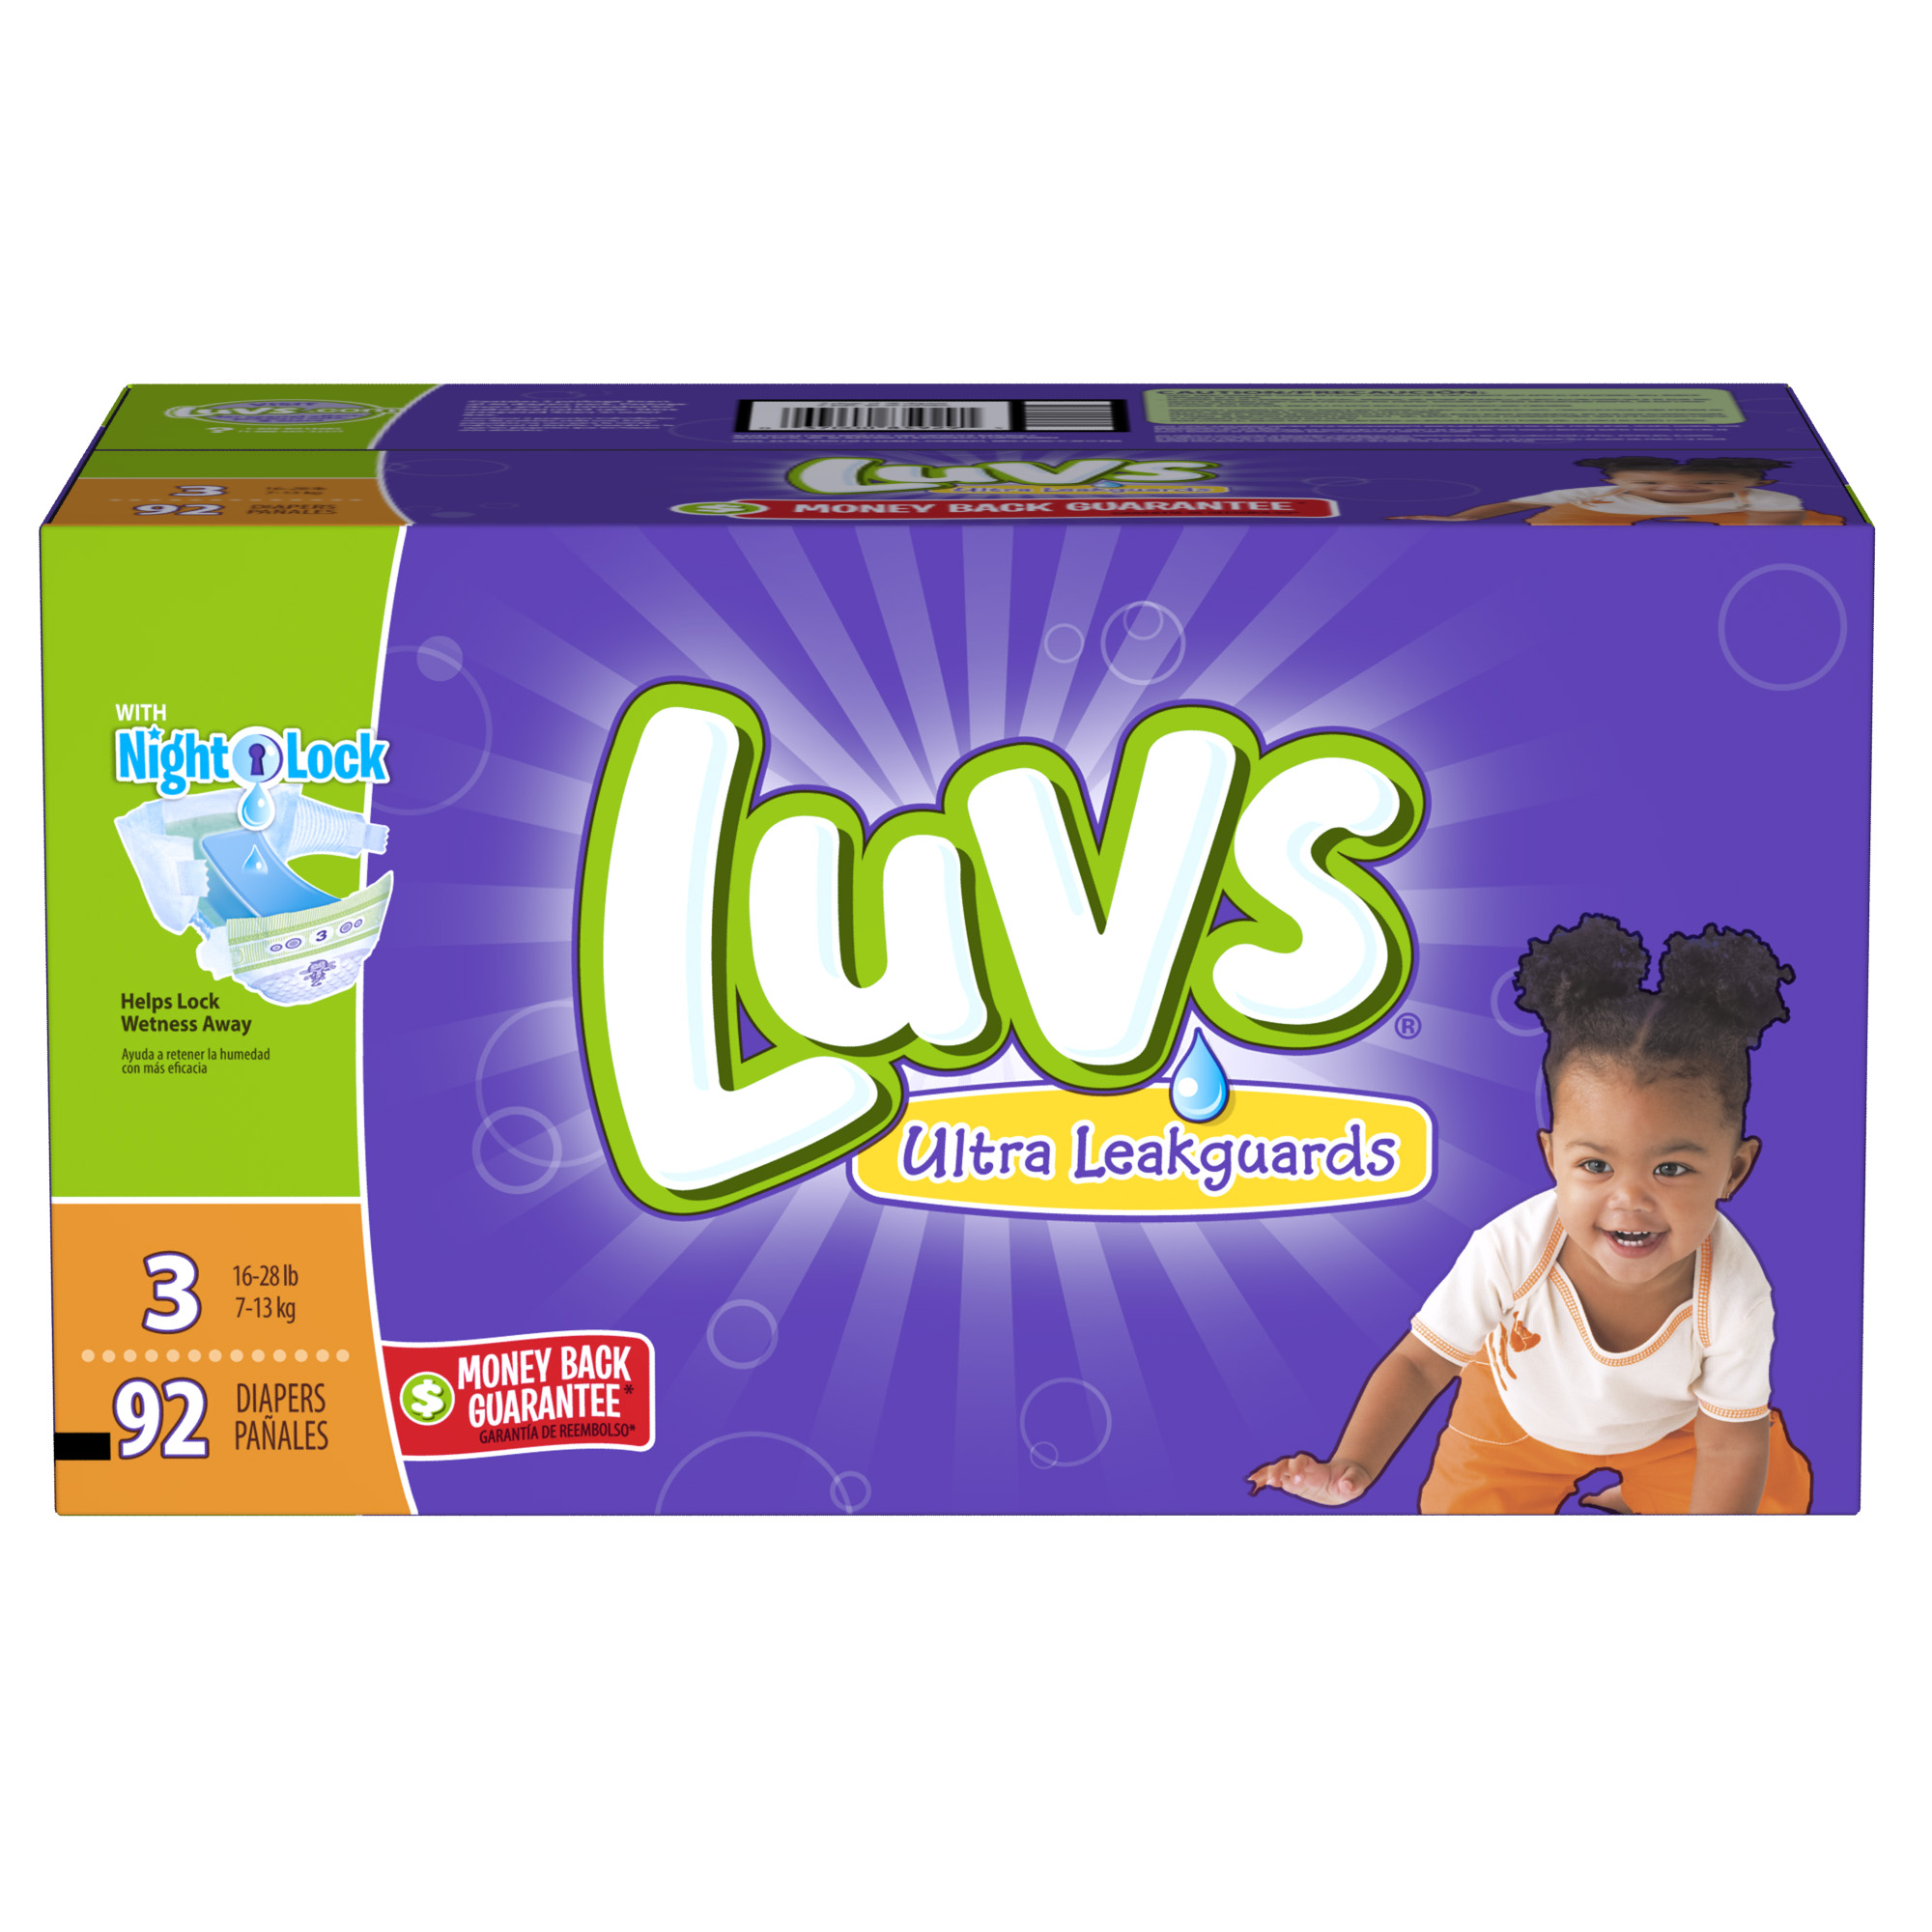 Luvs Diapers Triple Play: $2 Coupon + $5 Rebate + Money Back Guarantee #SharetheLuv #ad